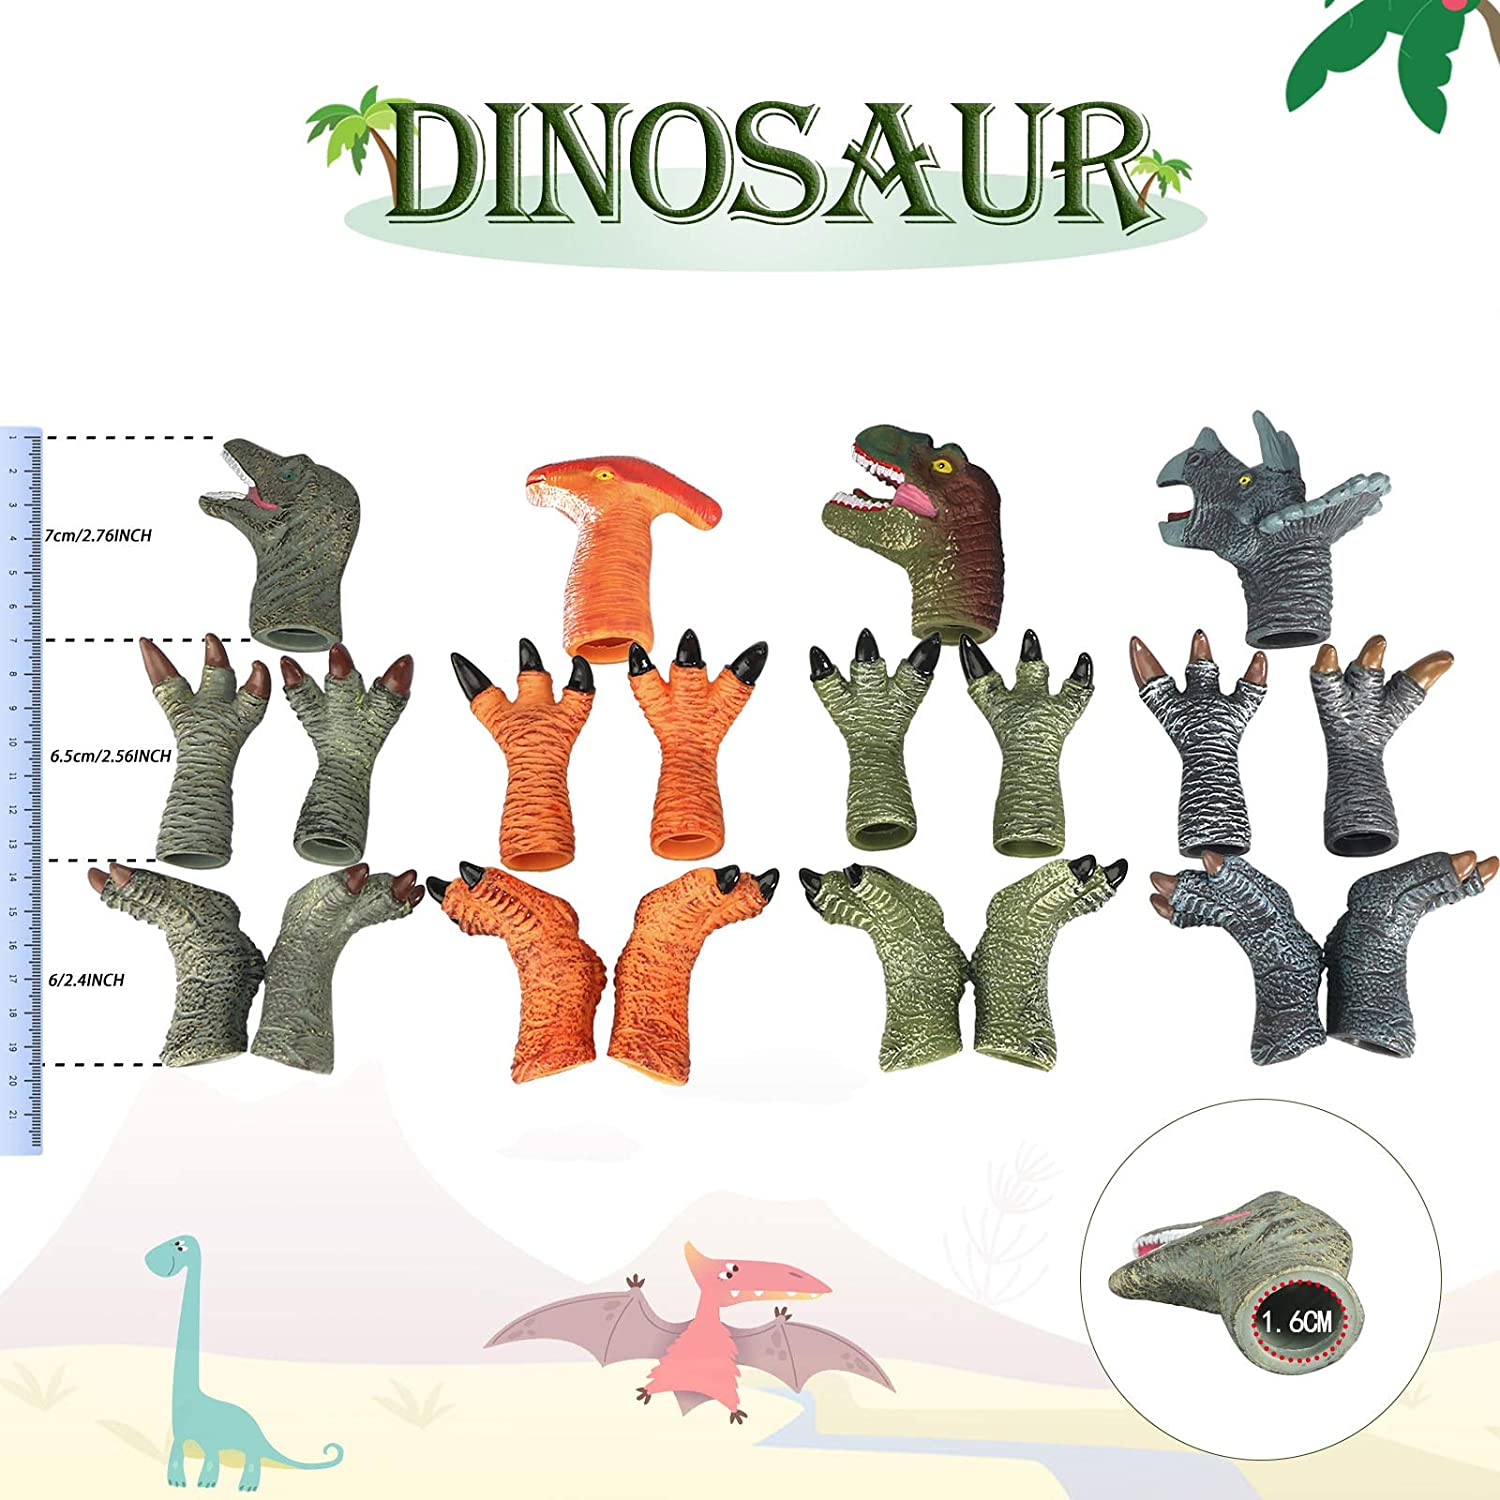 Bath Toys for Kids and Feet Rubber Dinosaur Finger Puppets Set with Heads Paws Finger Puppets 20pcs Dinosaur Toys